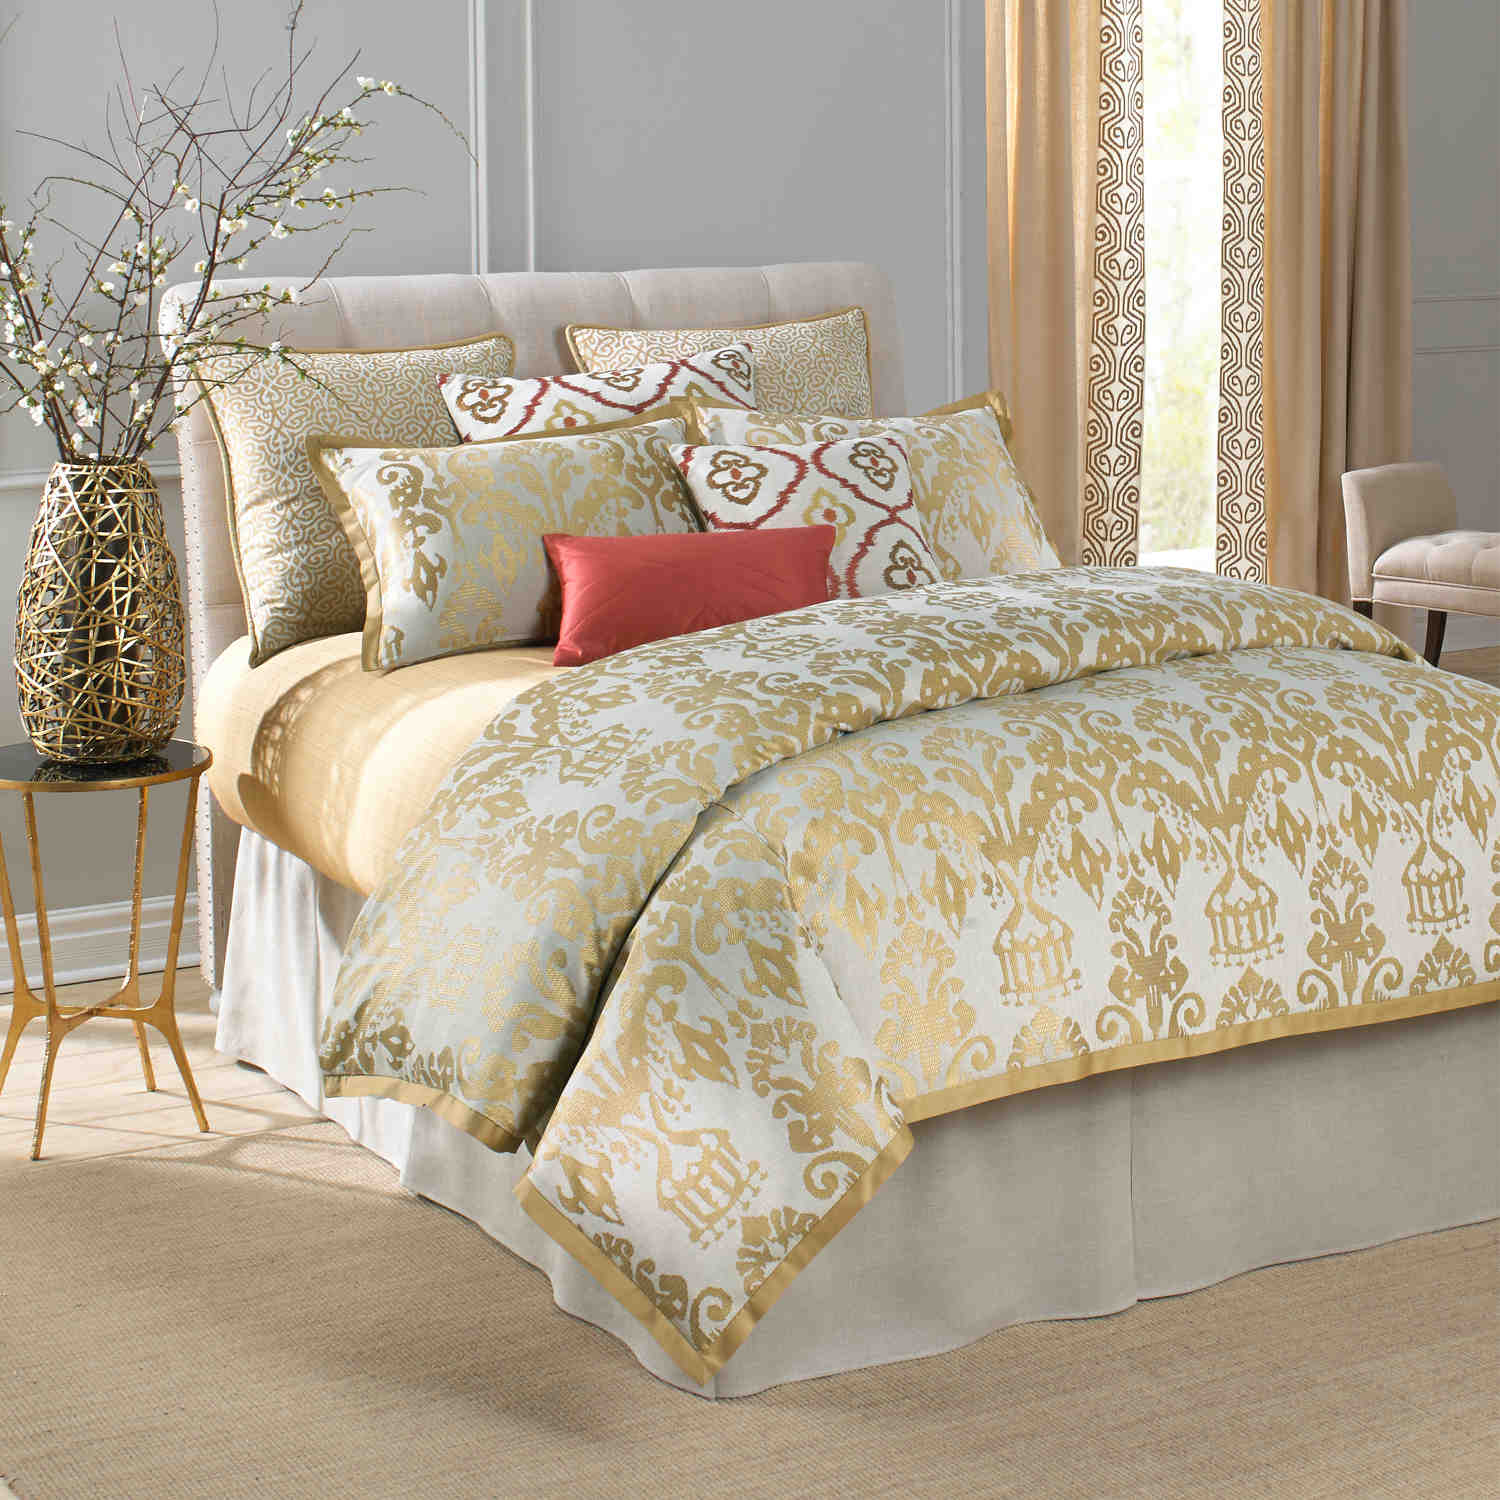 wildcat territory bedding  bedding queen - wildcat territory bedding rani collection